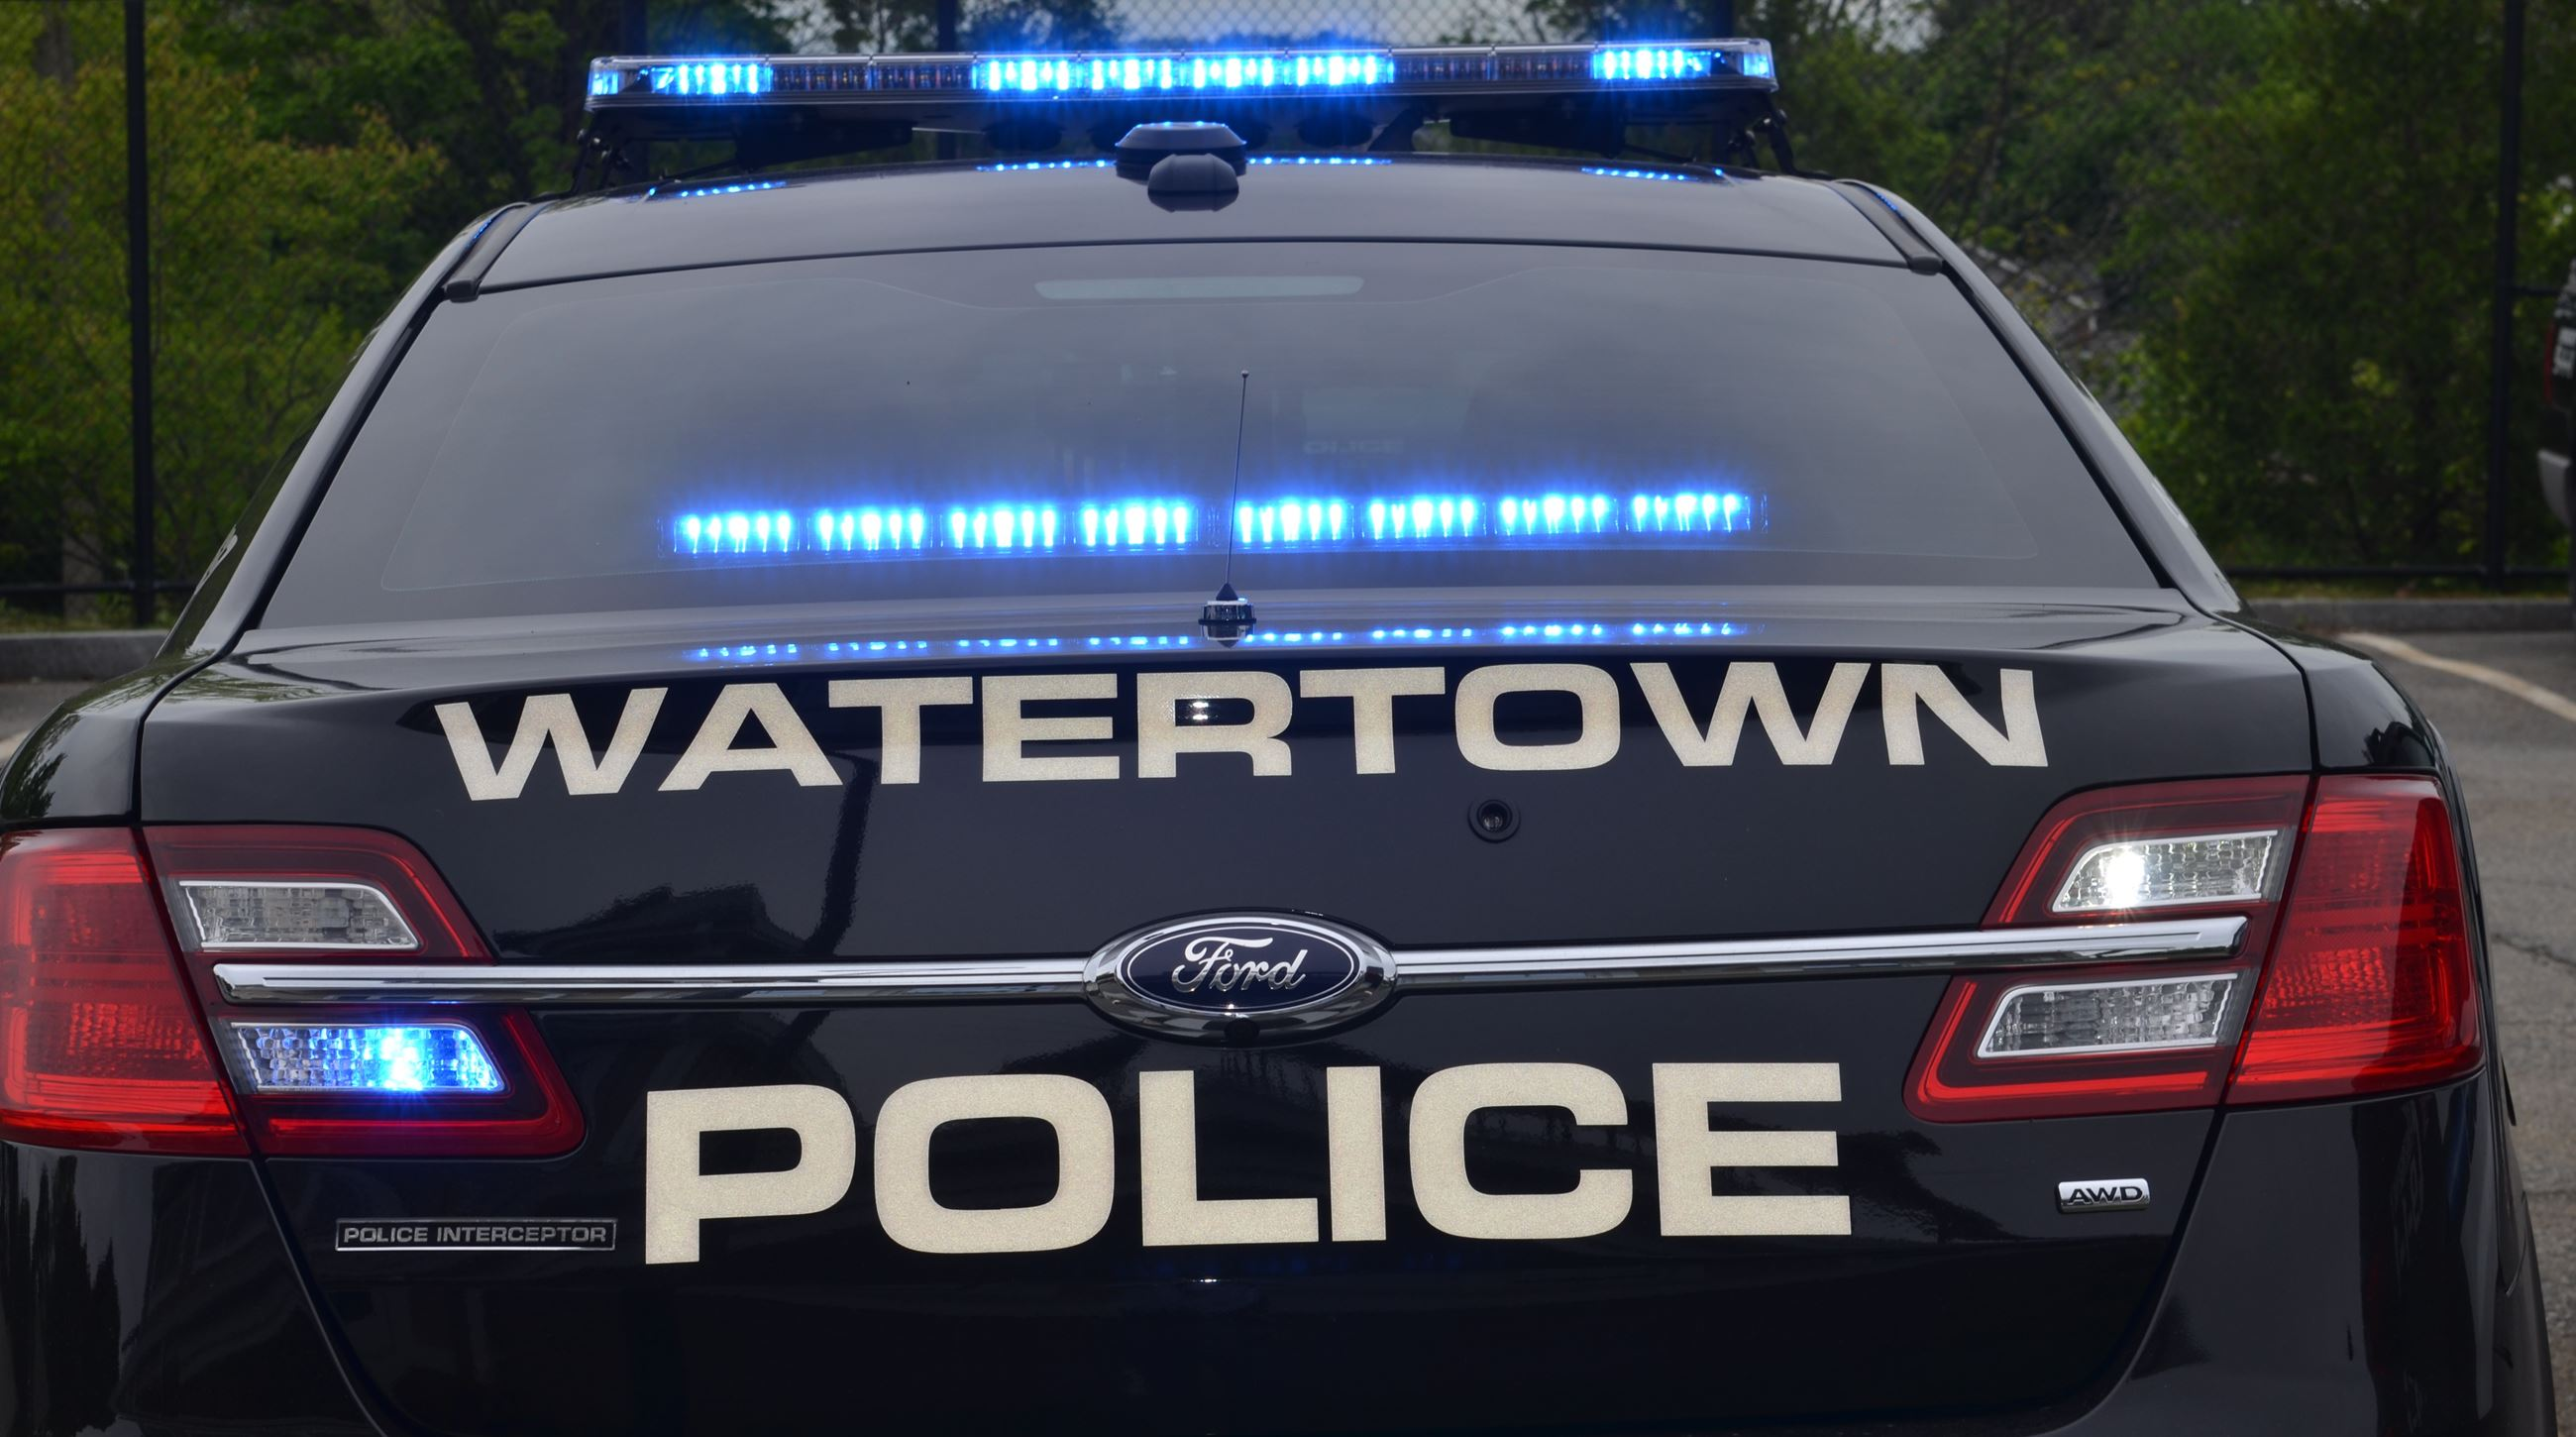 Watertown Police, MA | Official Website